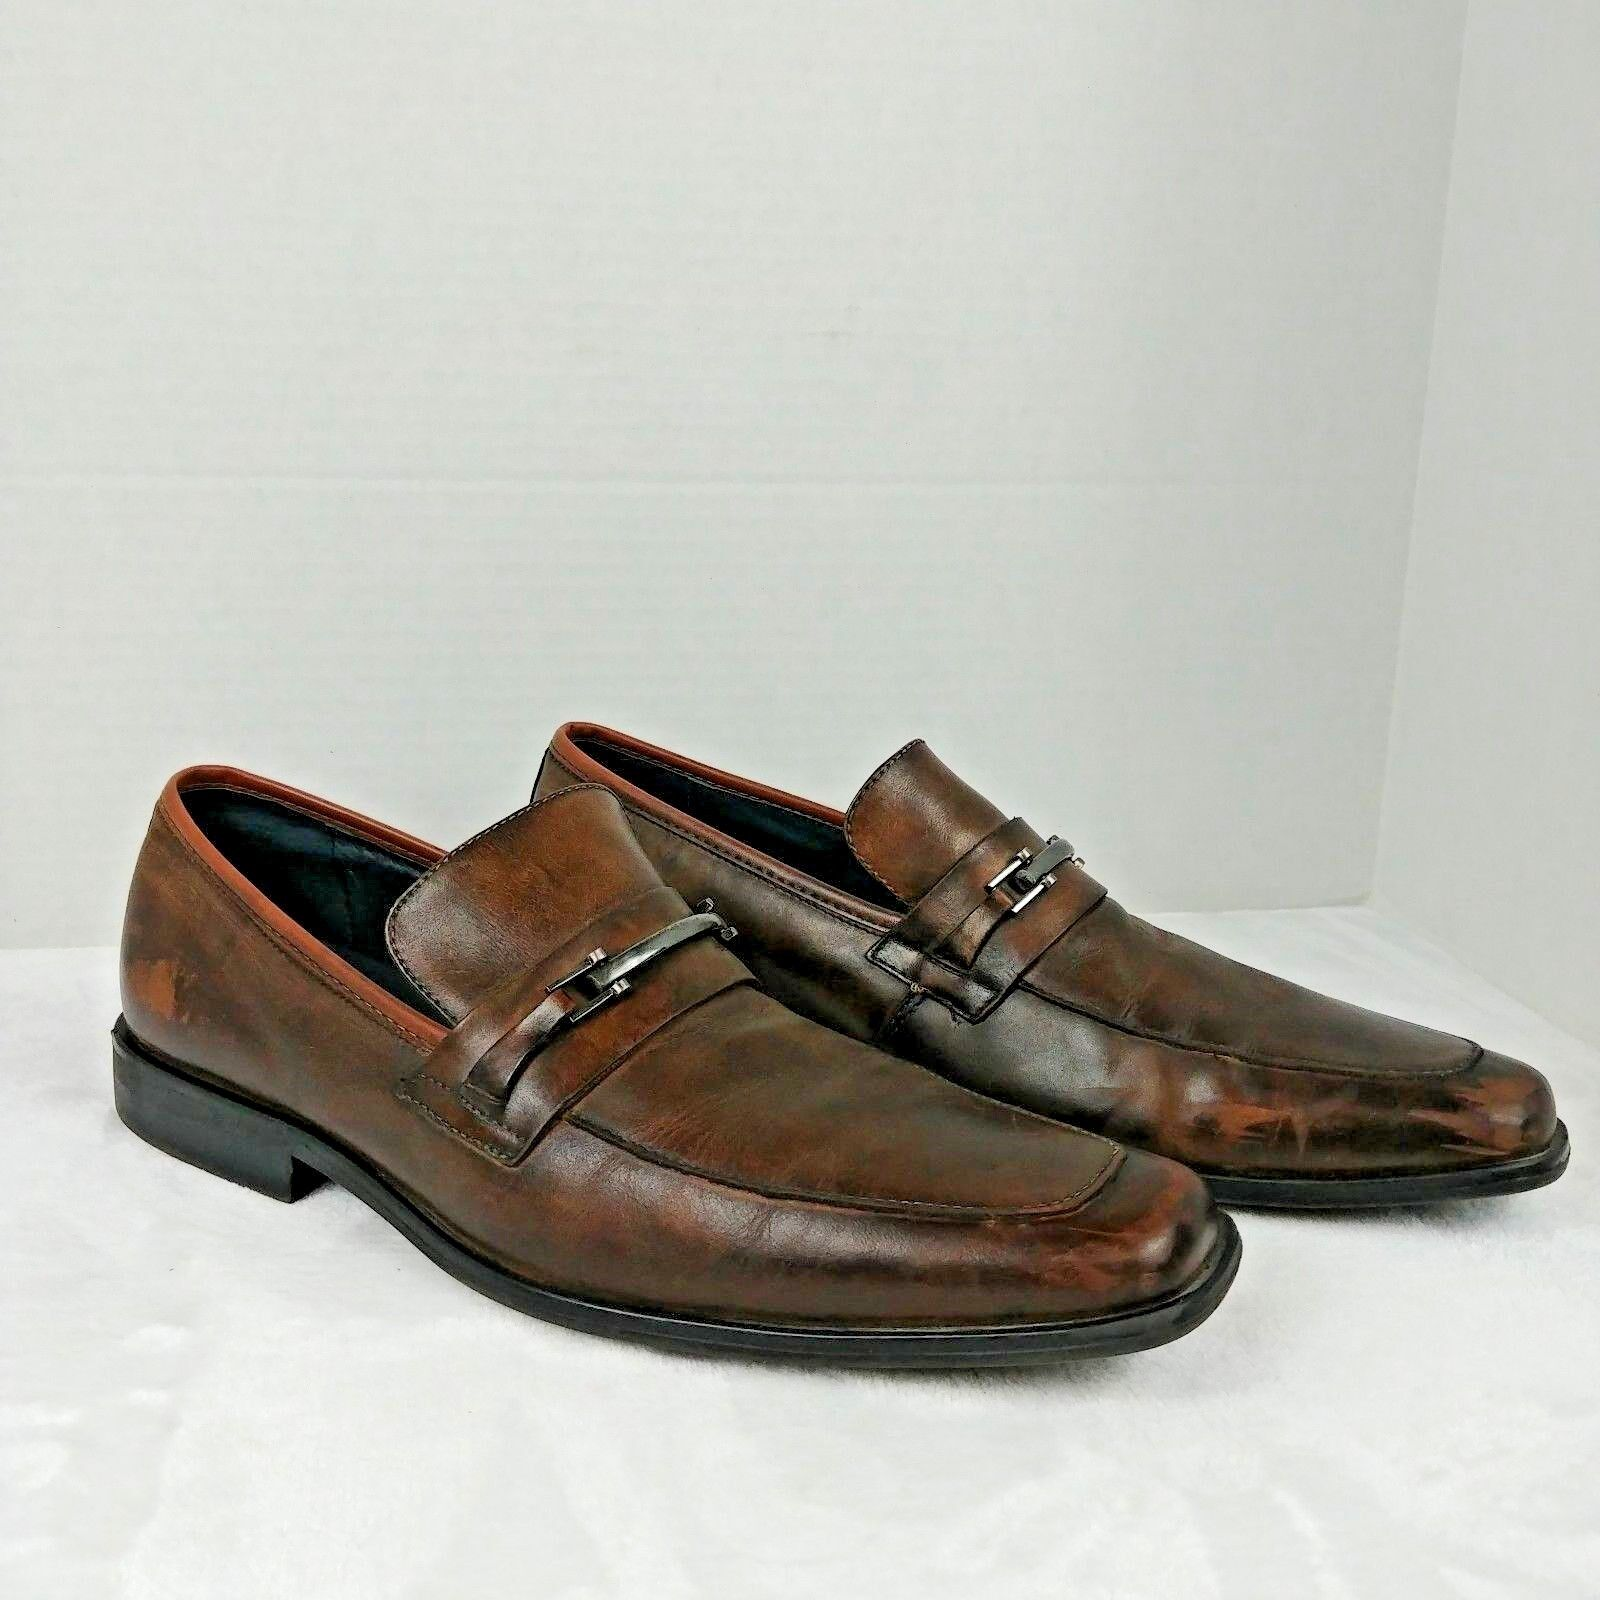 Steve MADDEN Men's Size 10.5 Brown faux Leather Slip On Loafers shoes